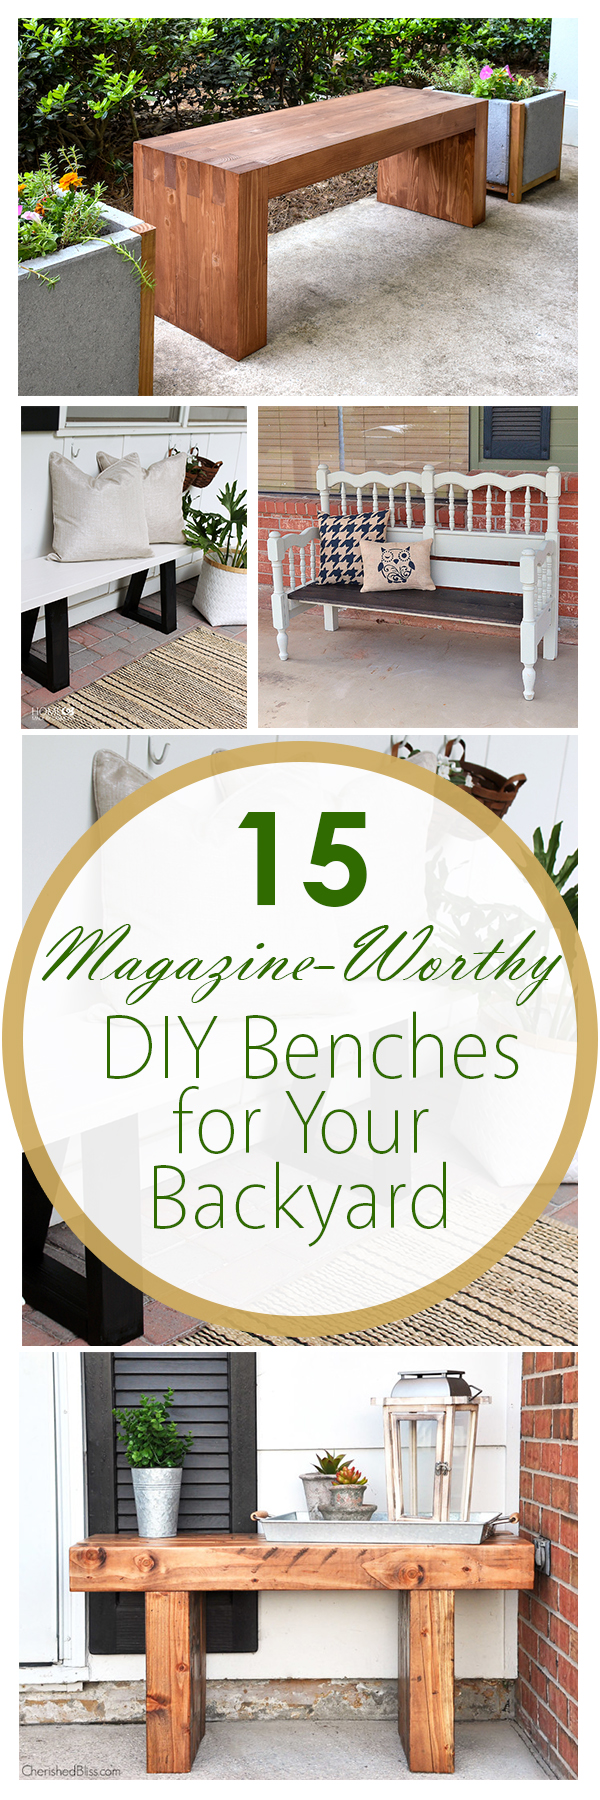 DIY backyard benches, DIY outdoor furniture, outdoor furniture ideas, DIY outdoors, everything DIY, popular pin, outdoor living.